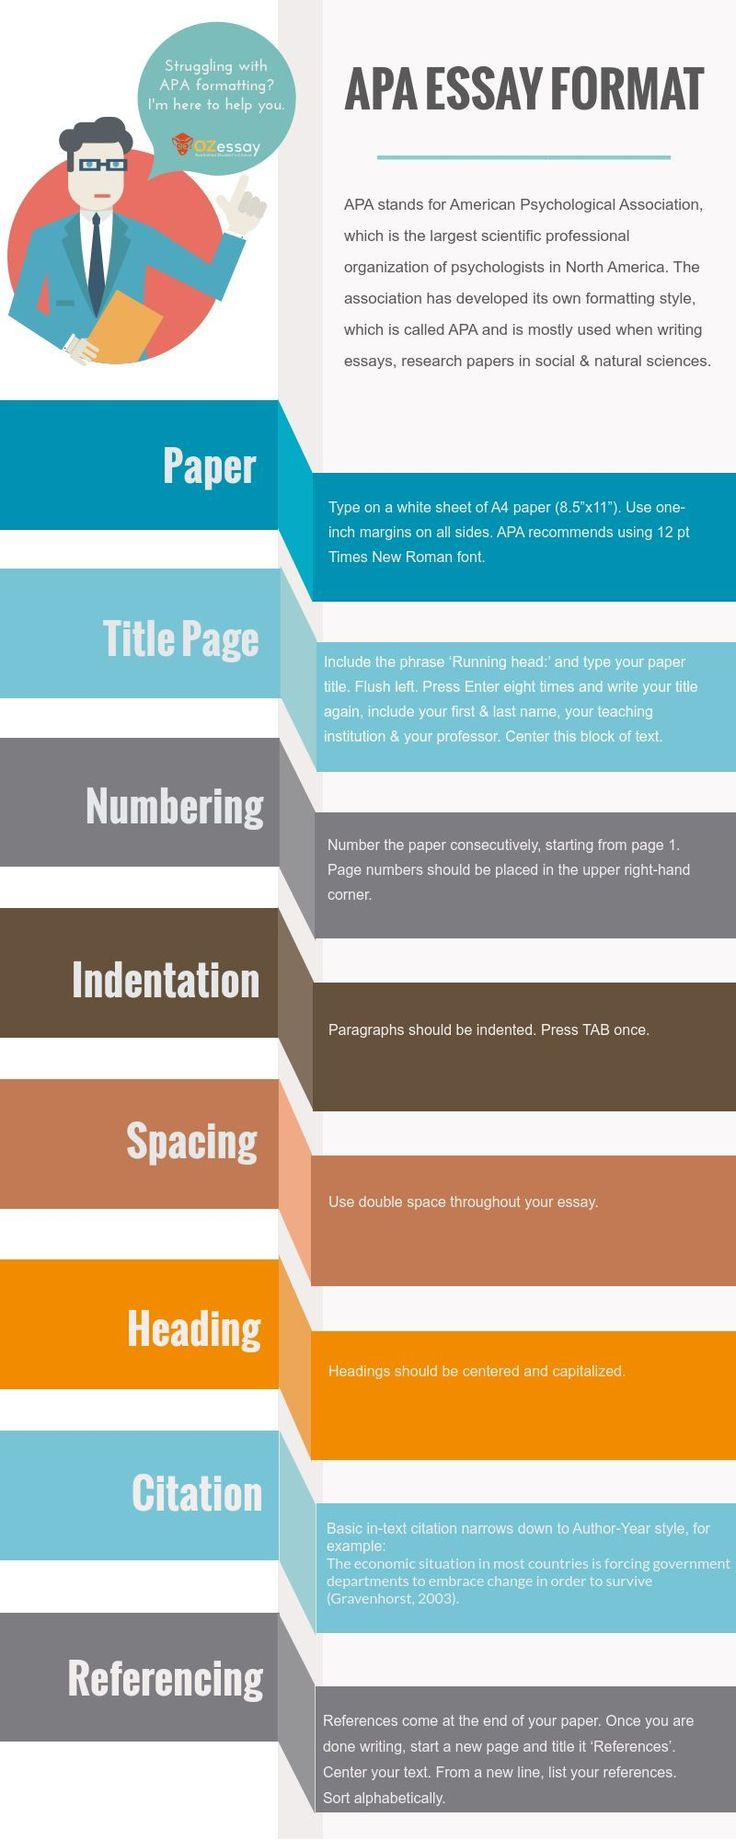 Writing an essay in APA style is not a problem anymore if to follow the instruction. This infographic is a real help for students, who know how to work fast and effectively. It will help you create a real masterpiece. But in case you need assistance with formatting or writing an essay, OzEssay - is a proven writing service you can trust! *** Providing original custom written papers in as little as 3 hours. Click here: |  paperhelpofessay.blogspot.com *** Providing original custom written…